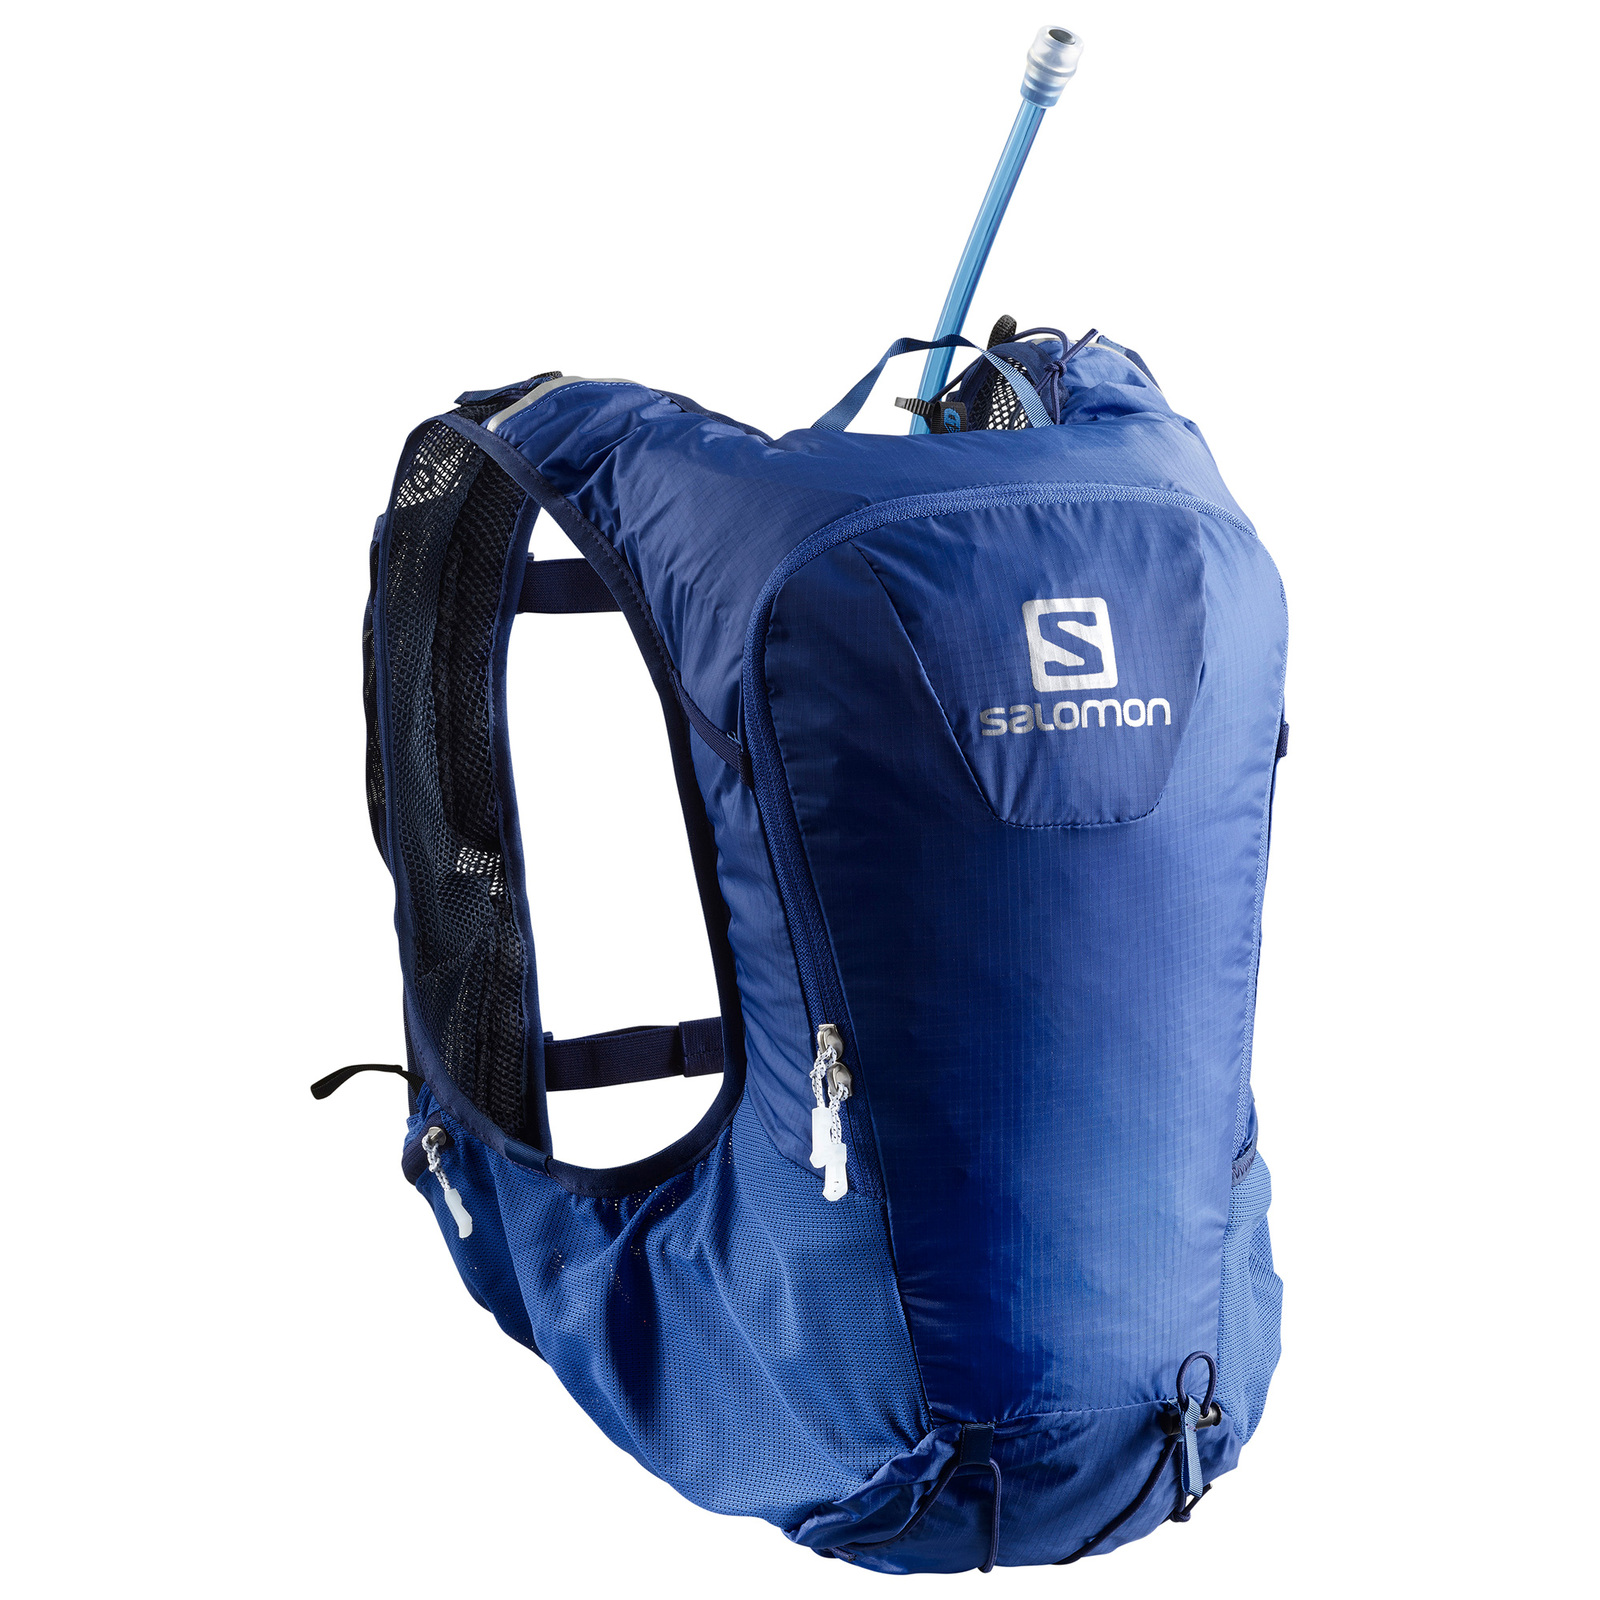 Salomon Backpack at Wild Earth